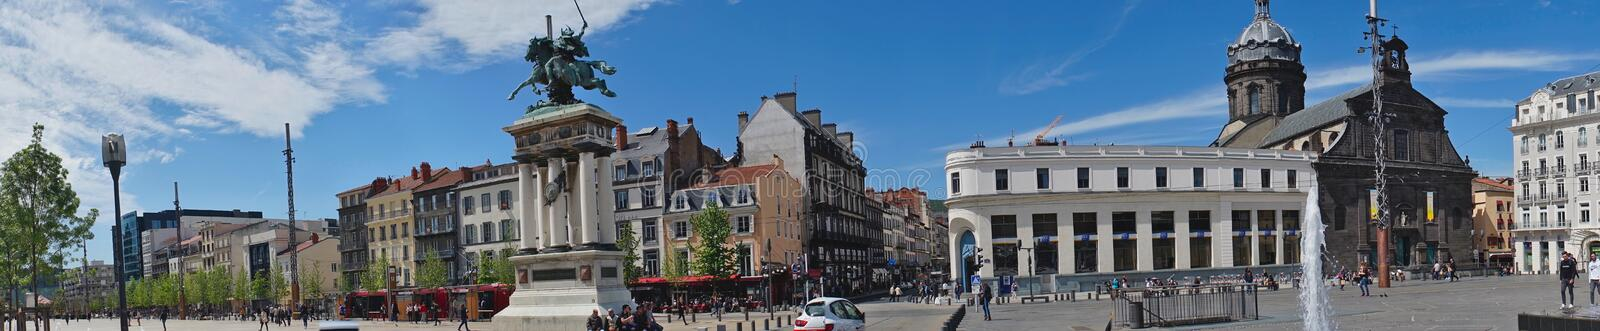 Panoramic shot, Place de Jaude in Clermont-Ferrand stock photos